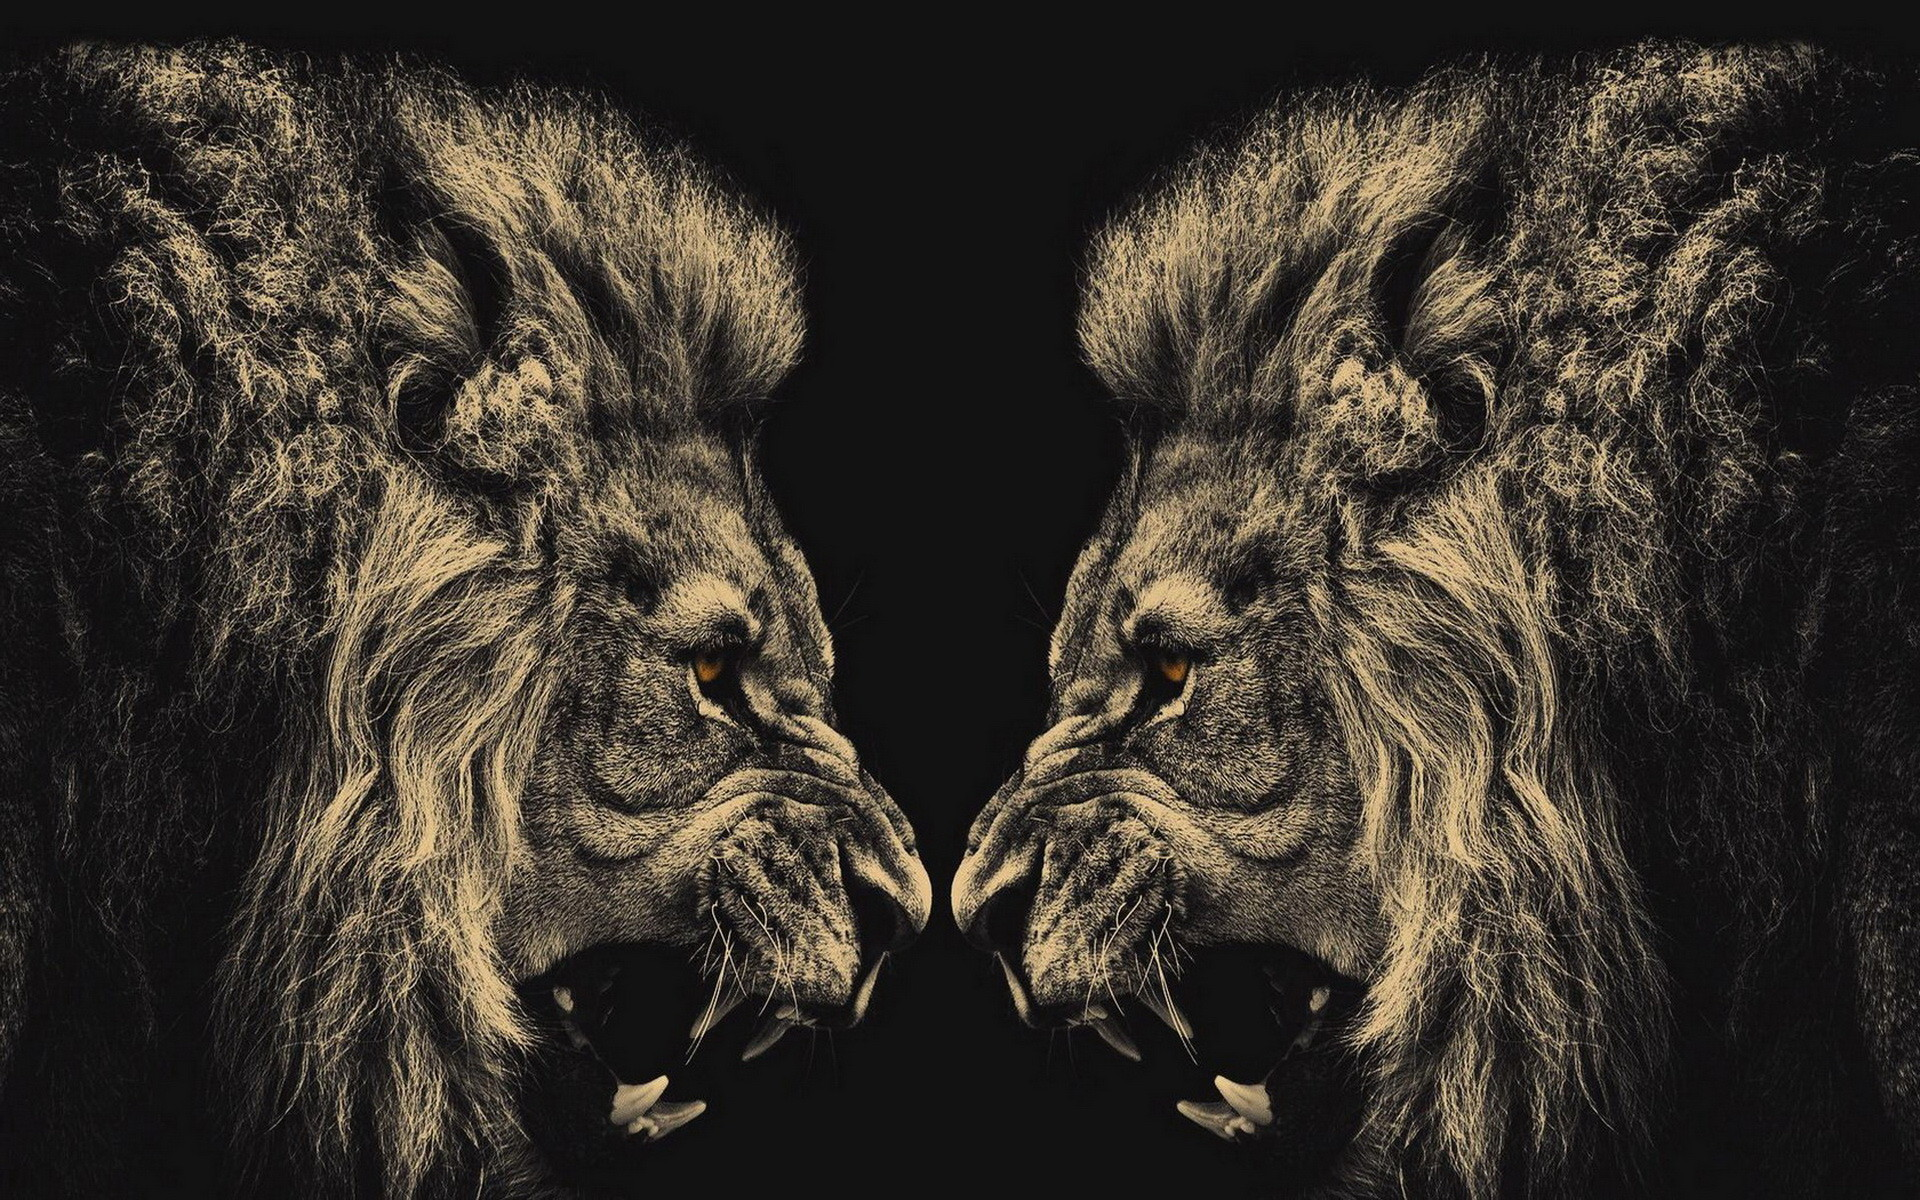 45 Lion Wallpaper Black And White Android Iphone Desktop Hd Backgrounds Wallpapers 1080p 4k 1920x1200 2020